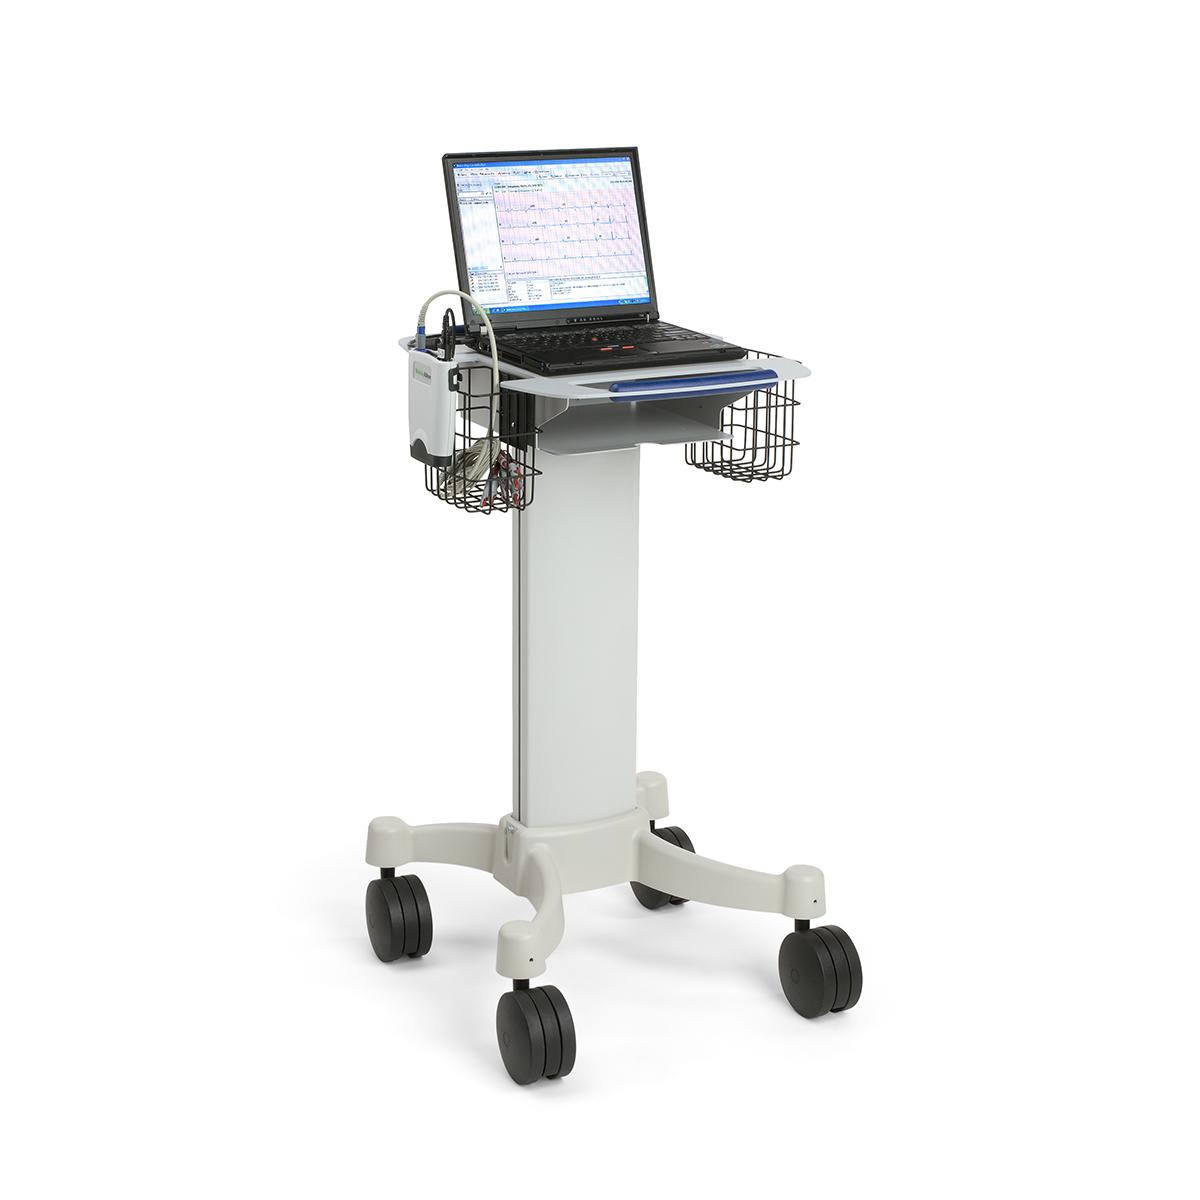 PC-Based Resting Electrocardiograph with laptop computer on rolling cart